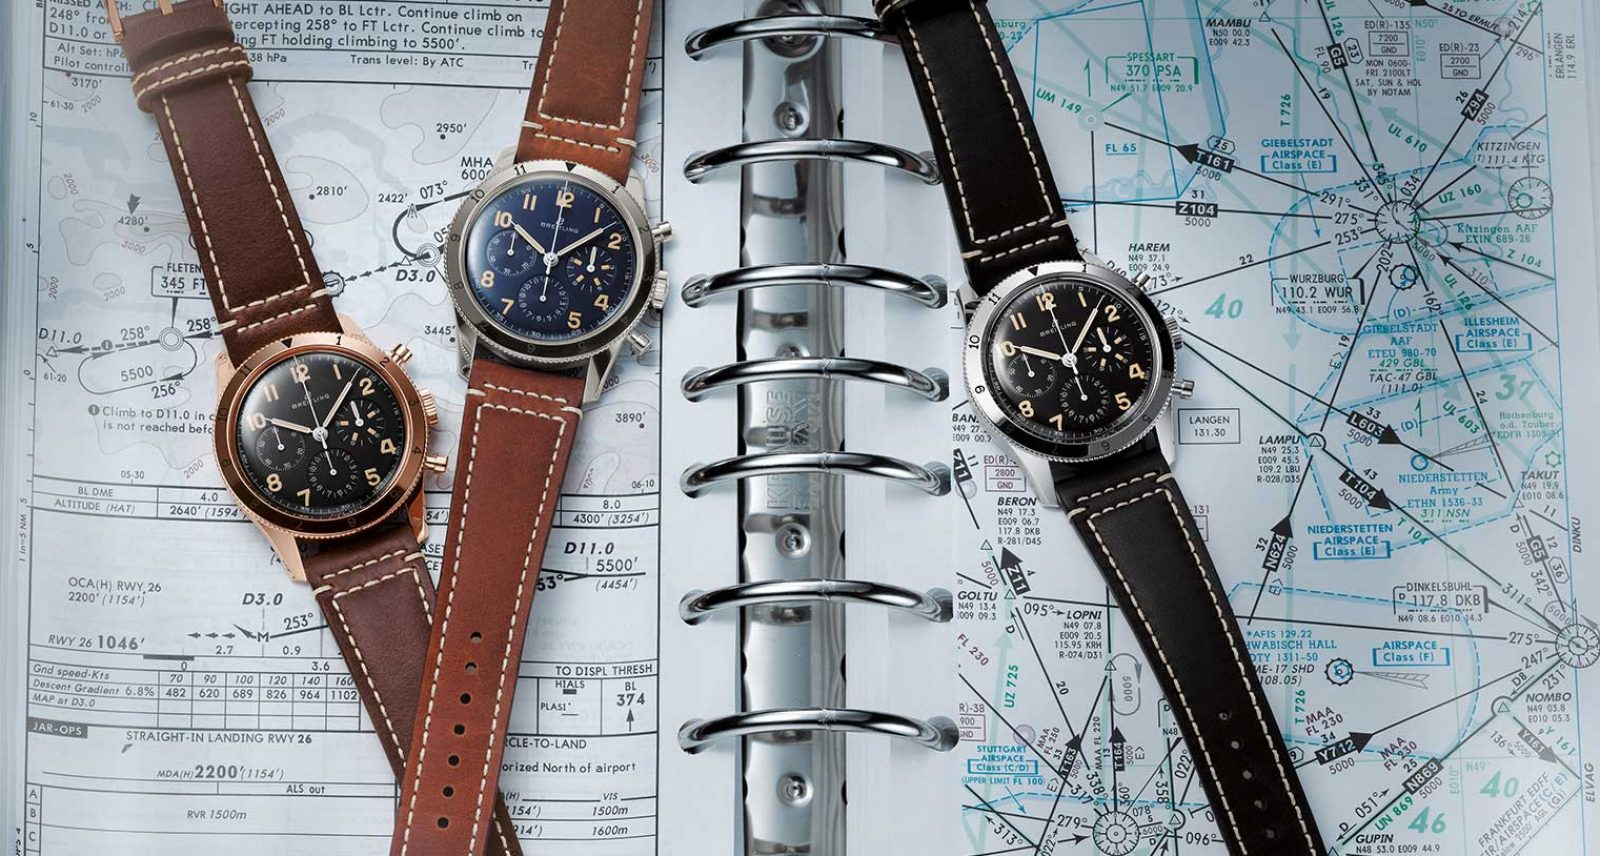 Breitling's AVI Ref. 765 1953 Re-Edition Will Fulfill Your Pilot Dreams